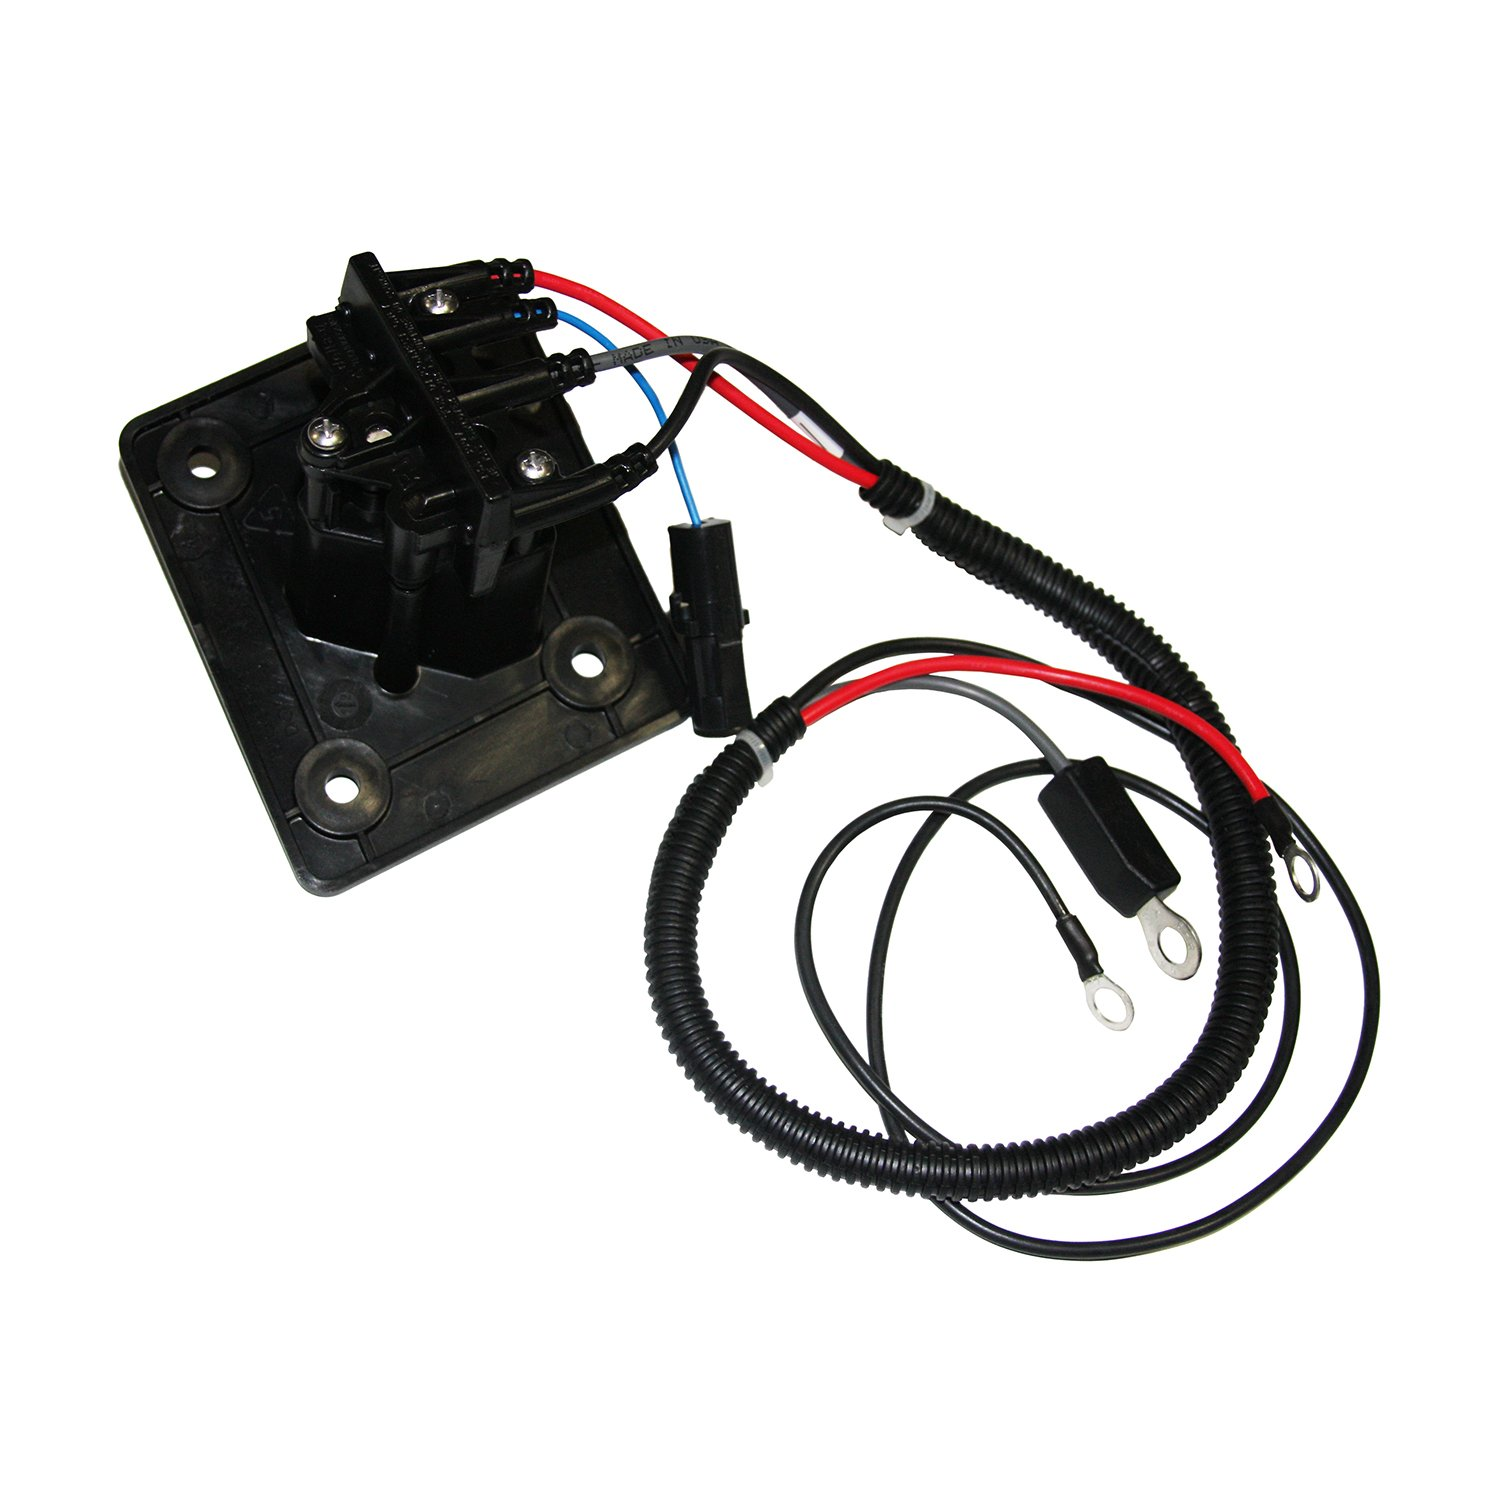 powerwise battery charger wiring diagram ezgo charger